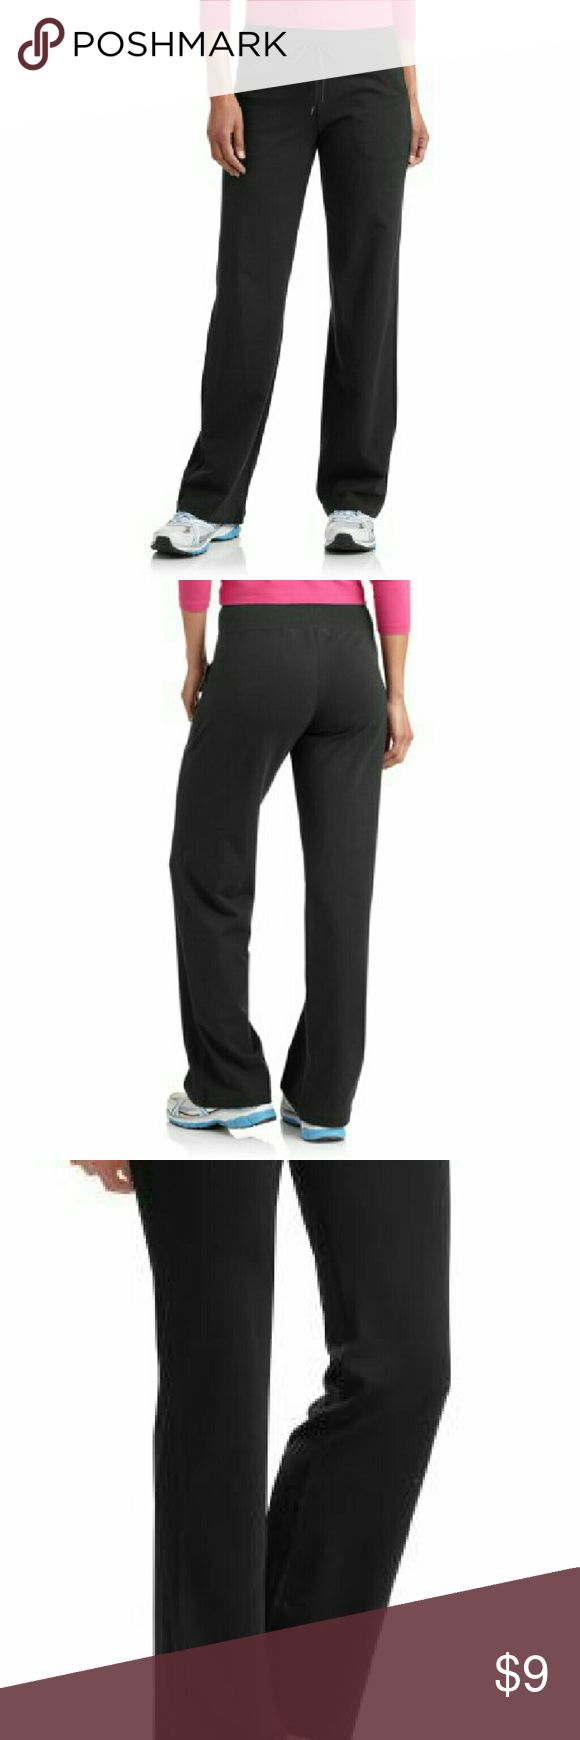 """Black C9 Pants *C9 by Champion Black Pants.  *These Soft Yet Stretchy Pants Fit & Flatter Your  Curves While Providing an Easy to Adjust Drawstring Waistband You can Easily Throw on & Dash out the Door.  *Women's Size Extra Small *True to Size.  *Body: 80% Cotton 20% Polyester. *Rib Trim: 95% Cotton 5% Spandex.  *Length 36"""" *Waist 15.5"""" *In-Seam 30"""".  *No Discoloration *No Tears *No Stains.  *OFFERS WELCOME *TRADE ALSO. Champion Pants Track Pants & Joggers"""